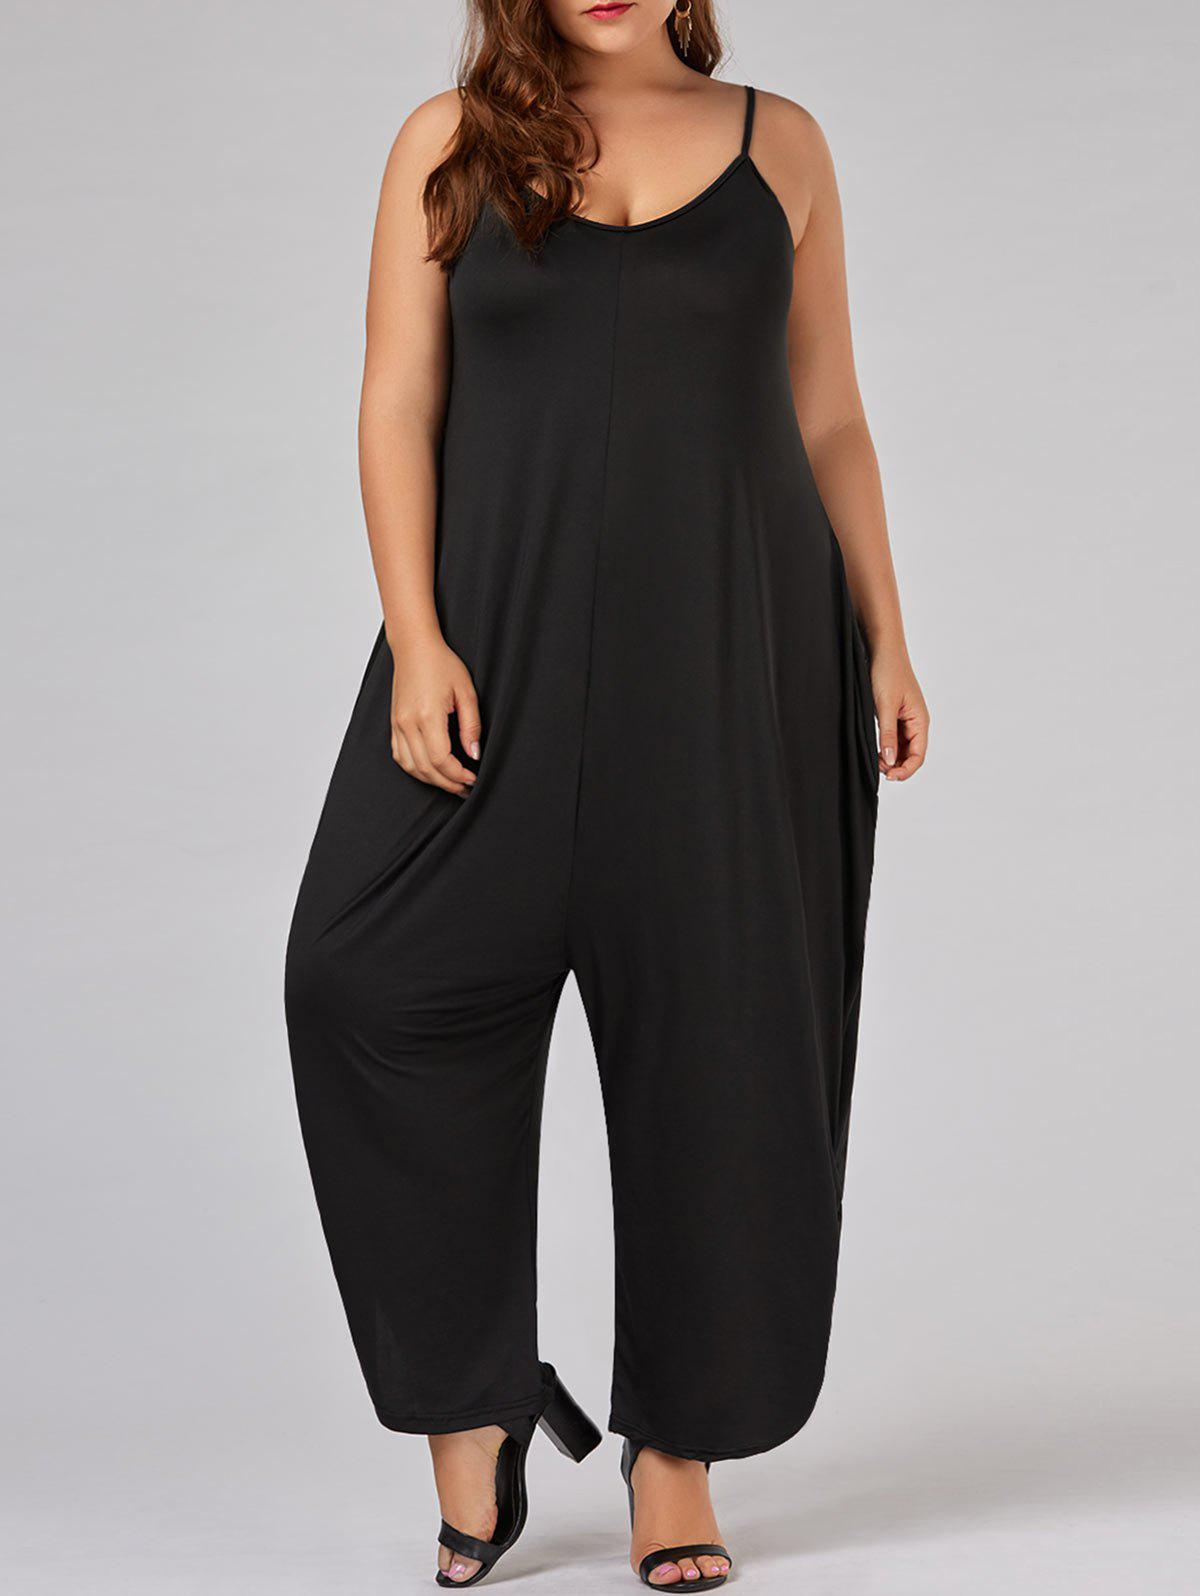 Plus Size Spaghetti Strap Baggy JumpsuitWOMEN<br><br>Size: 5XL; Color: BLACK; Style: Fashion; Length: Normal; Material: Cotton,Polyester; Fit Type: Loose; Waist Type: High; Closure Type: Elastic Waist; Pattern Type: Solid; Embellishment: Ruched; Pant Style: Harem Pants; Weight: 0.3100kg; Package Contents: 1 x Jumpsuit;